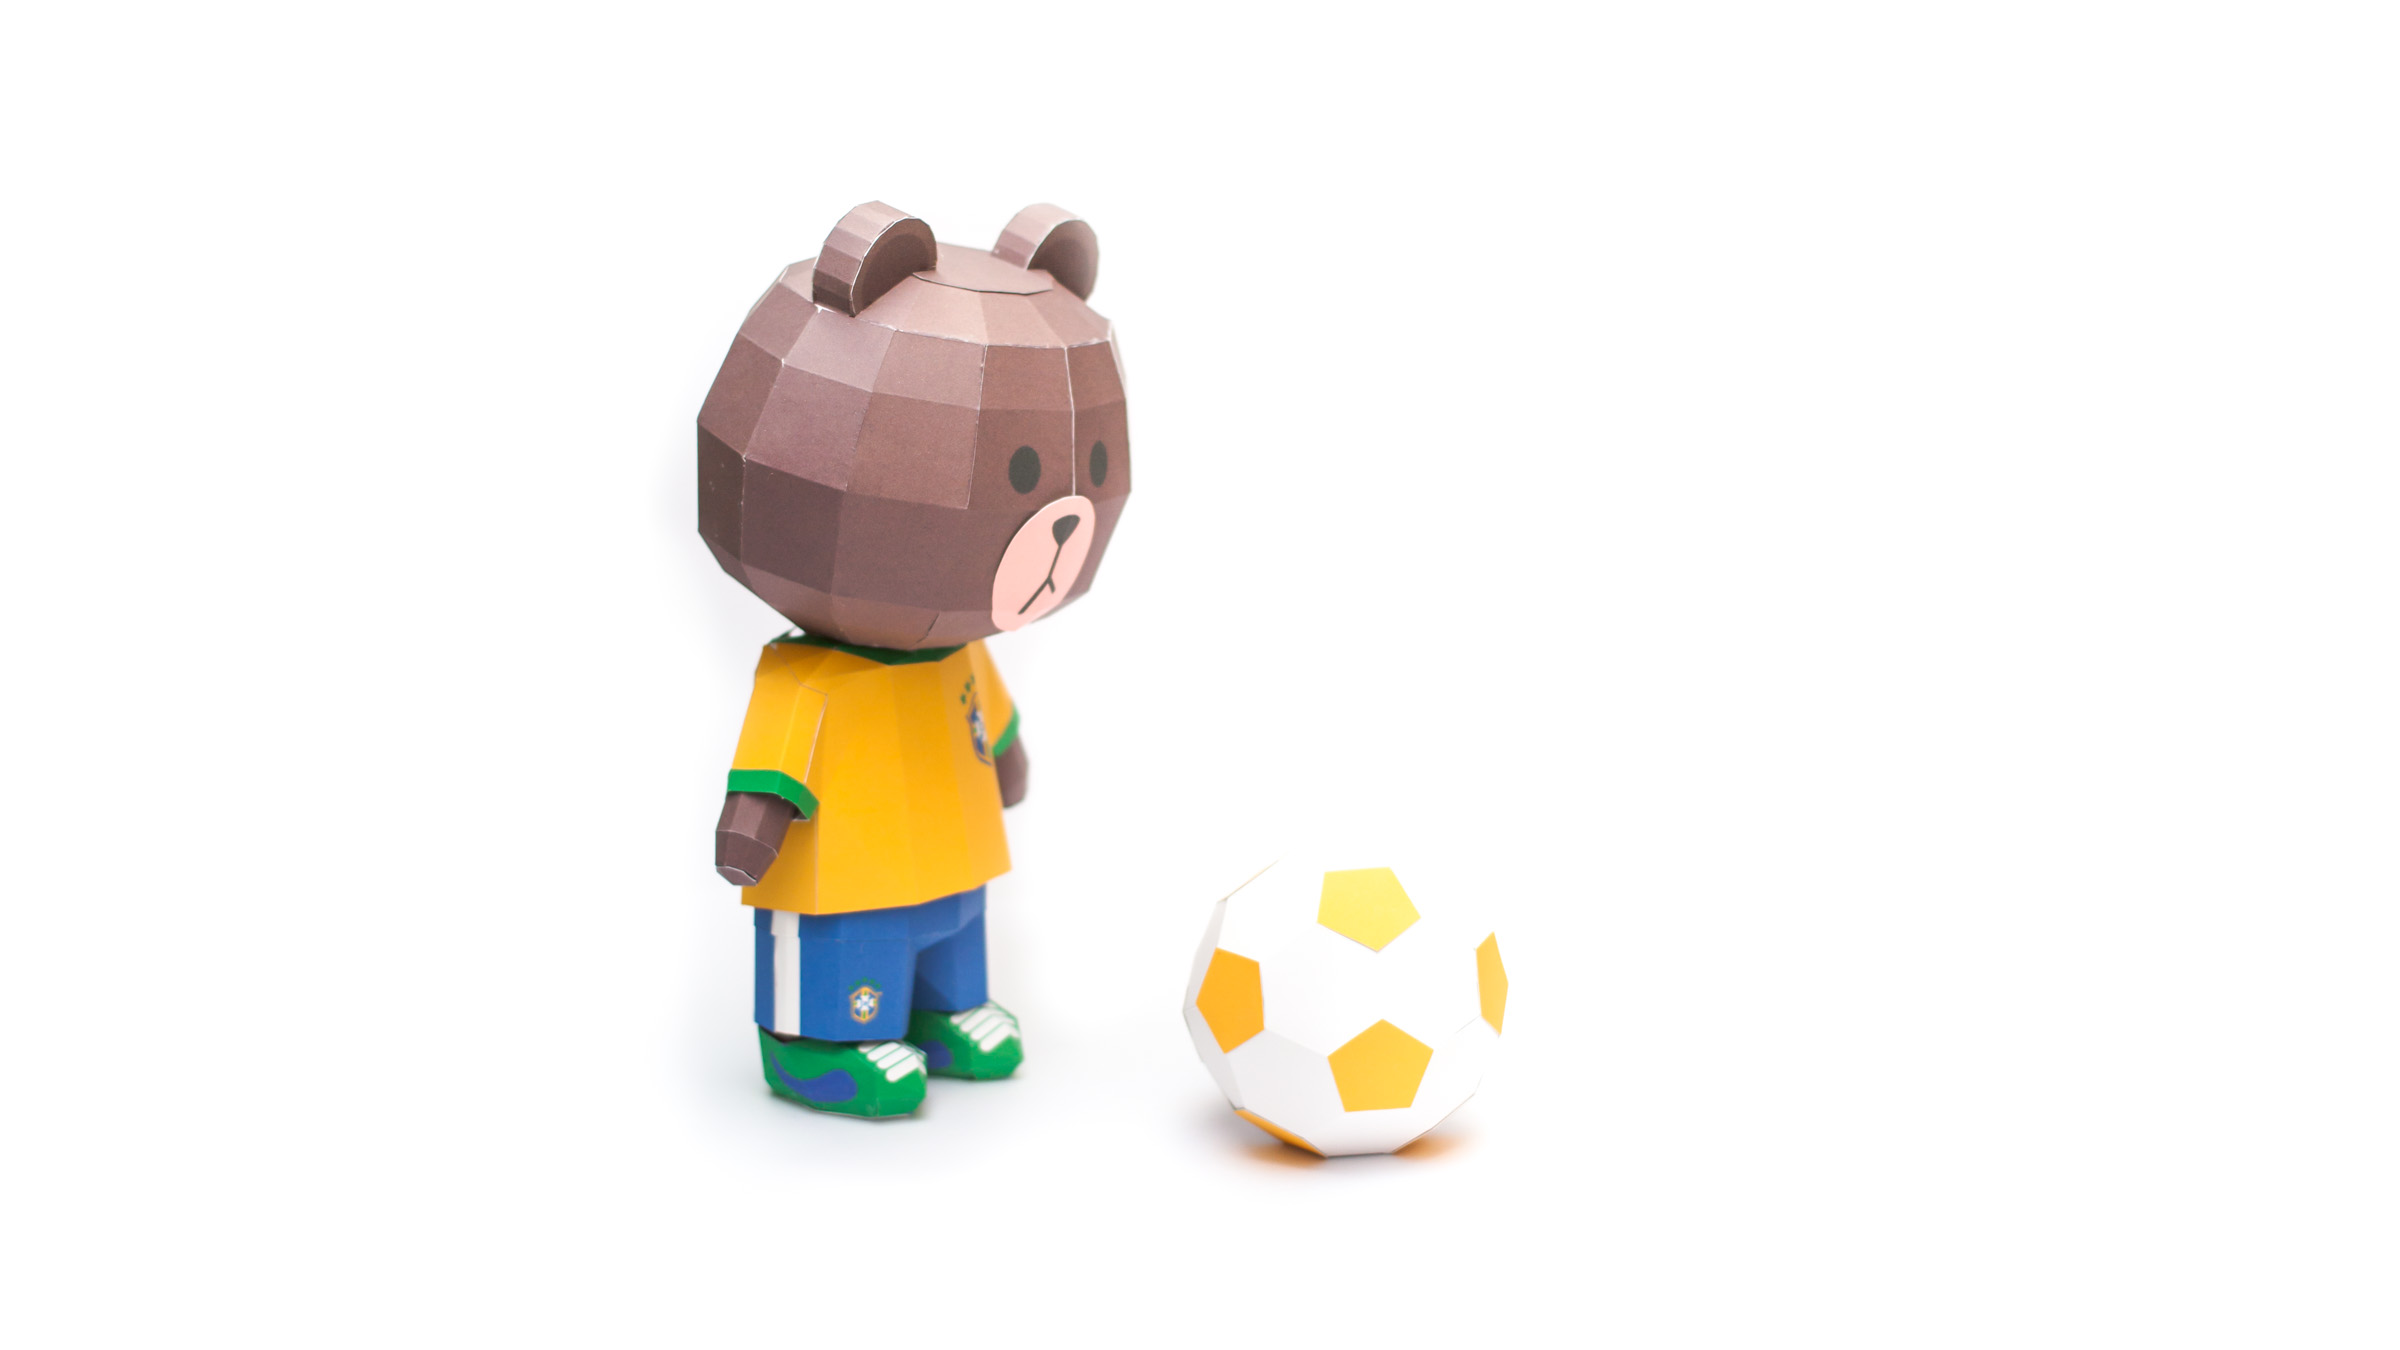 LINE Brown Bear in FIFA World Cup 2014 Brazil Uniform Papercraft Model Finished 005